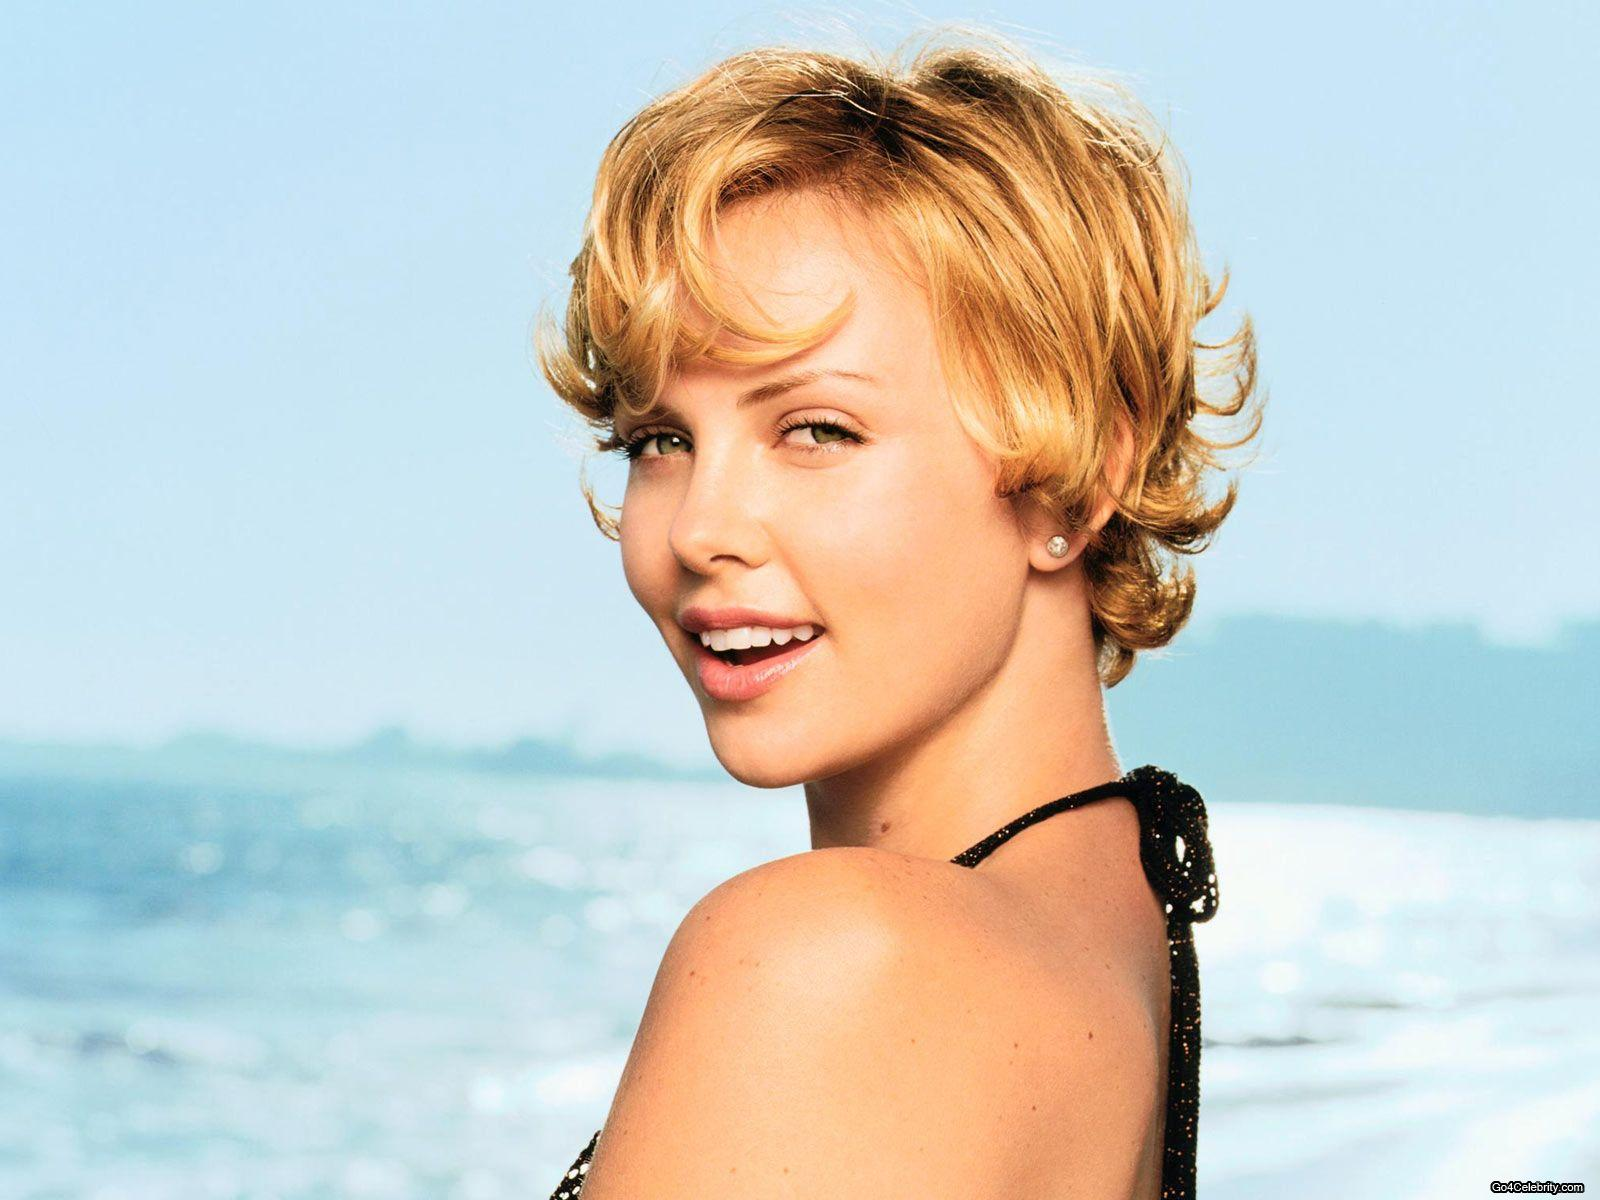 Best Wallpaper: Charlize Theron Wallpapers Charlize Theron